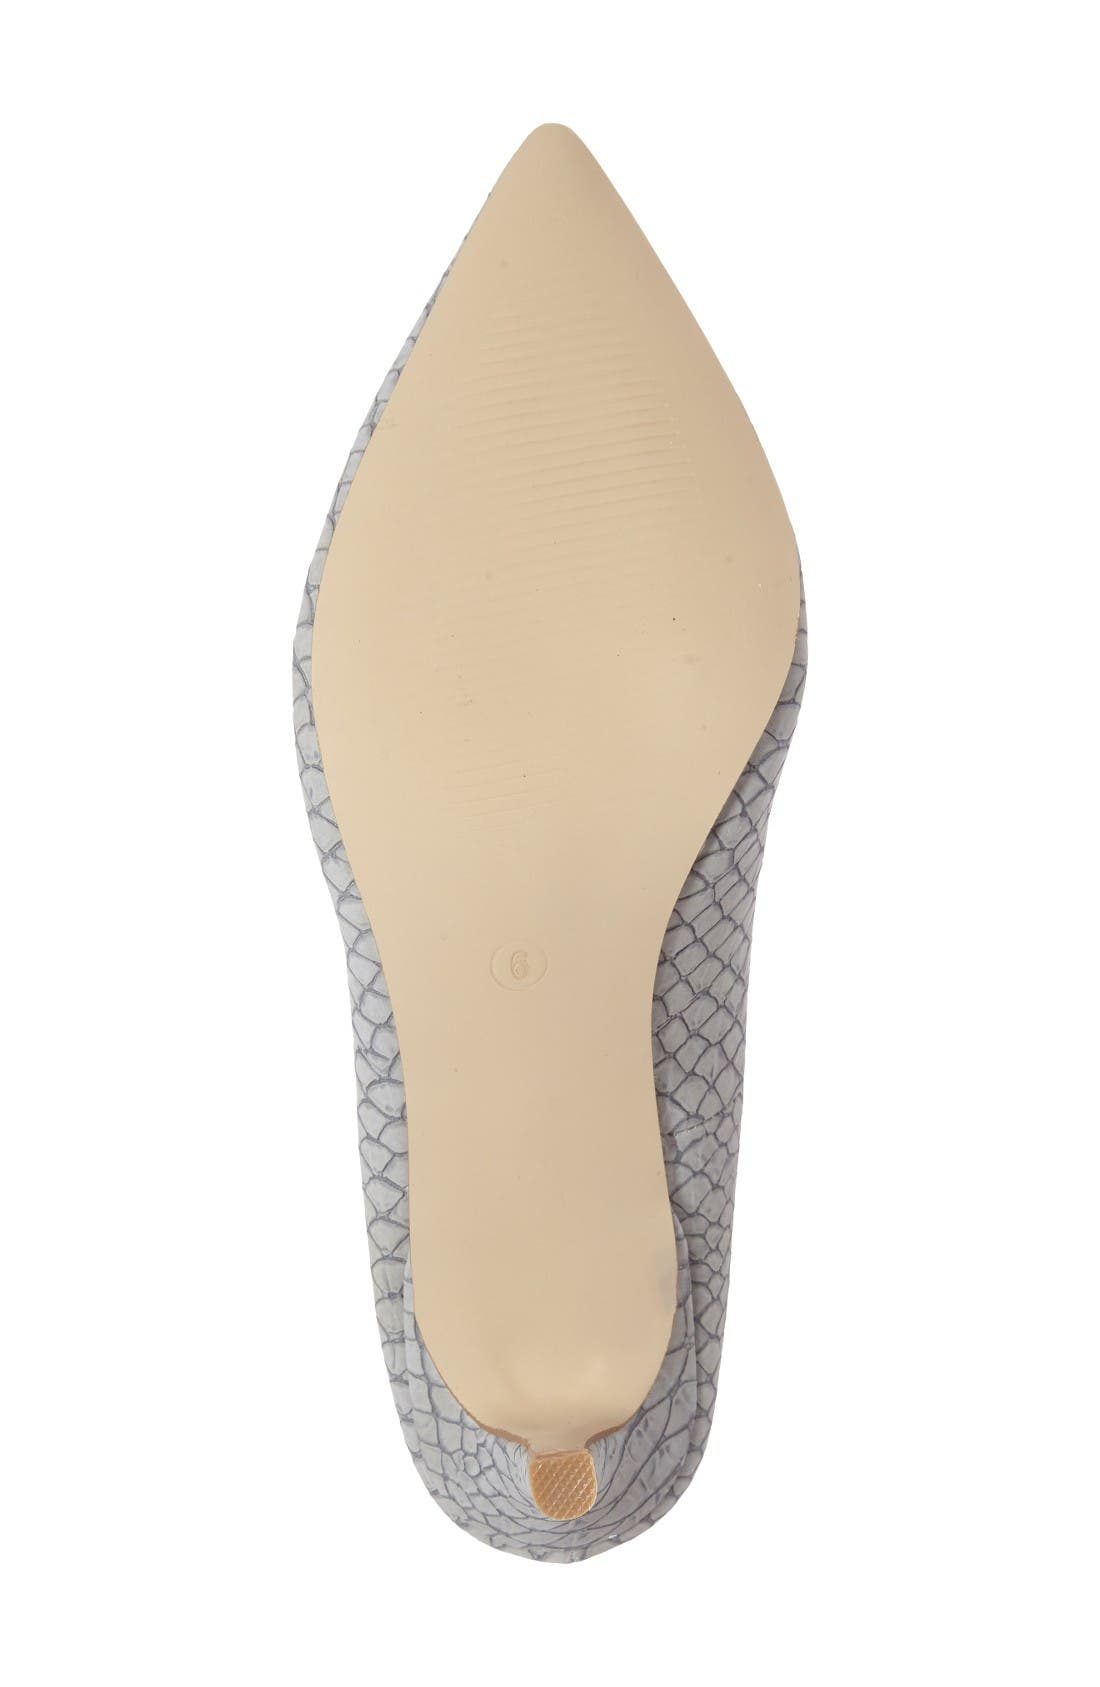 Tikka Pointy Toe Pump,                             Alternate thumbnail 4, color,                             Grey Faux Leather